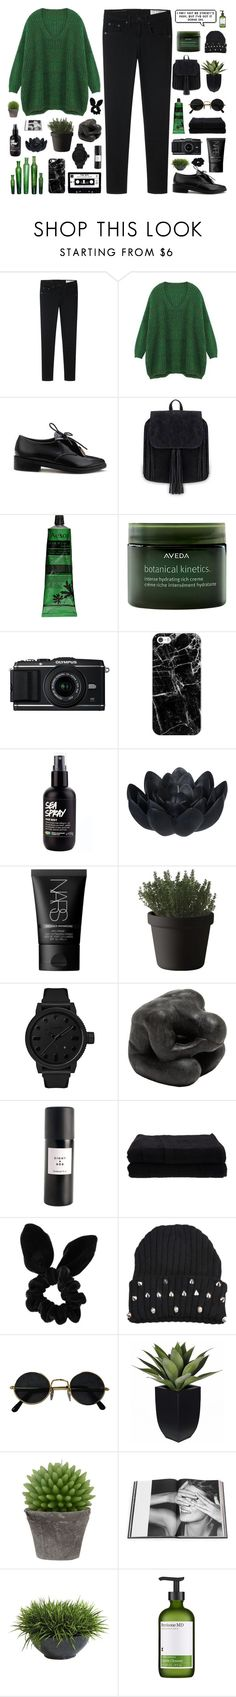 """""""NANCY"""" by pure-and-valuable ❤ liked on Polyvore featuring rag & bone, Aesop, Aveda, Casetify, Sia, NARS Cosmetics, Muuto, Tsovet, Oly and Eight & Bob"""